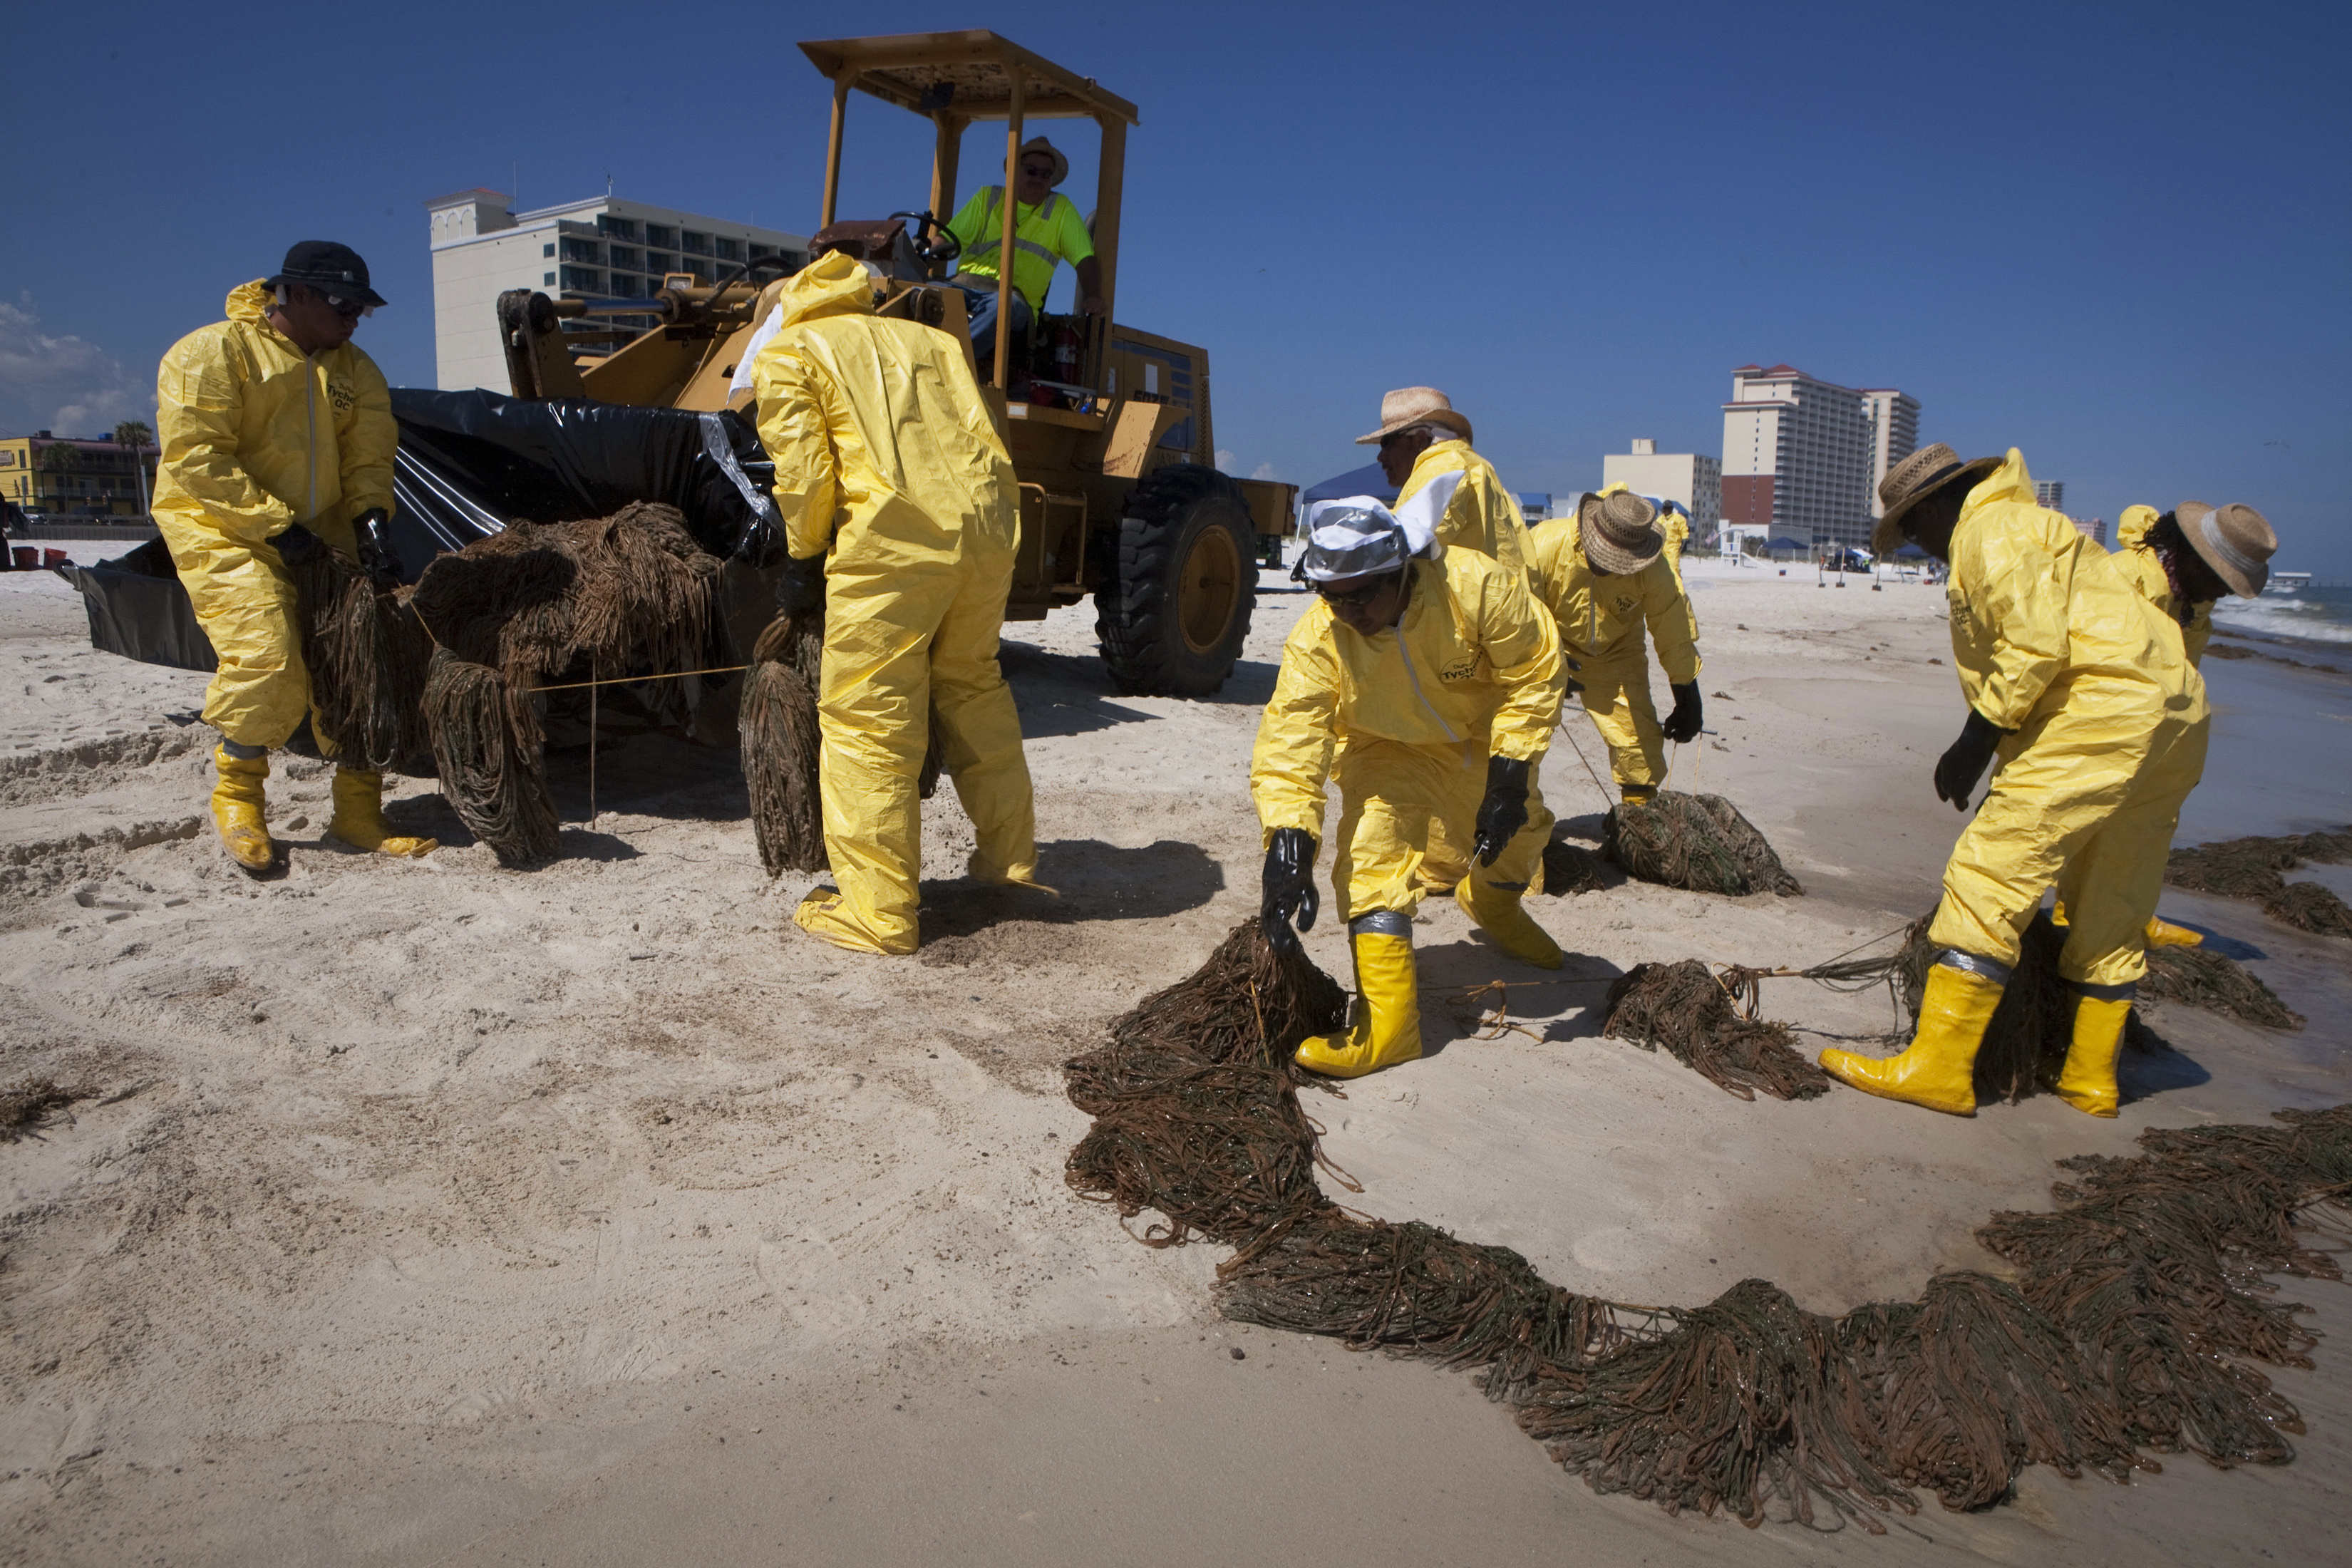 A clean-up crew collects booms soaked with oil from the Deepwater Horizon spill on a beach in Gulf Shores, Alabama, in this June 25, 2010 file photo. Clean-up workers say they're paid about $1000 per week after taxes, while boat operators can make over $1200, a lucrative, albeit short-term proposition. REUTERS/Lee Celano